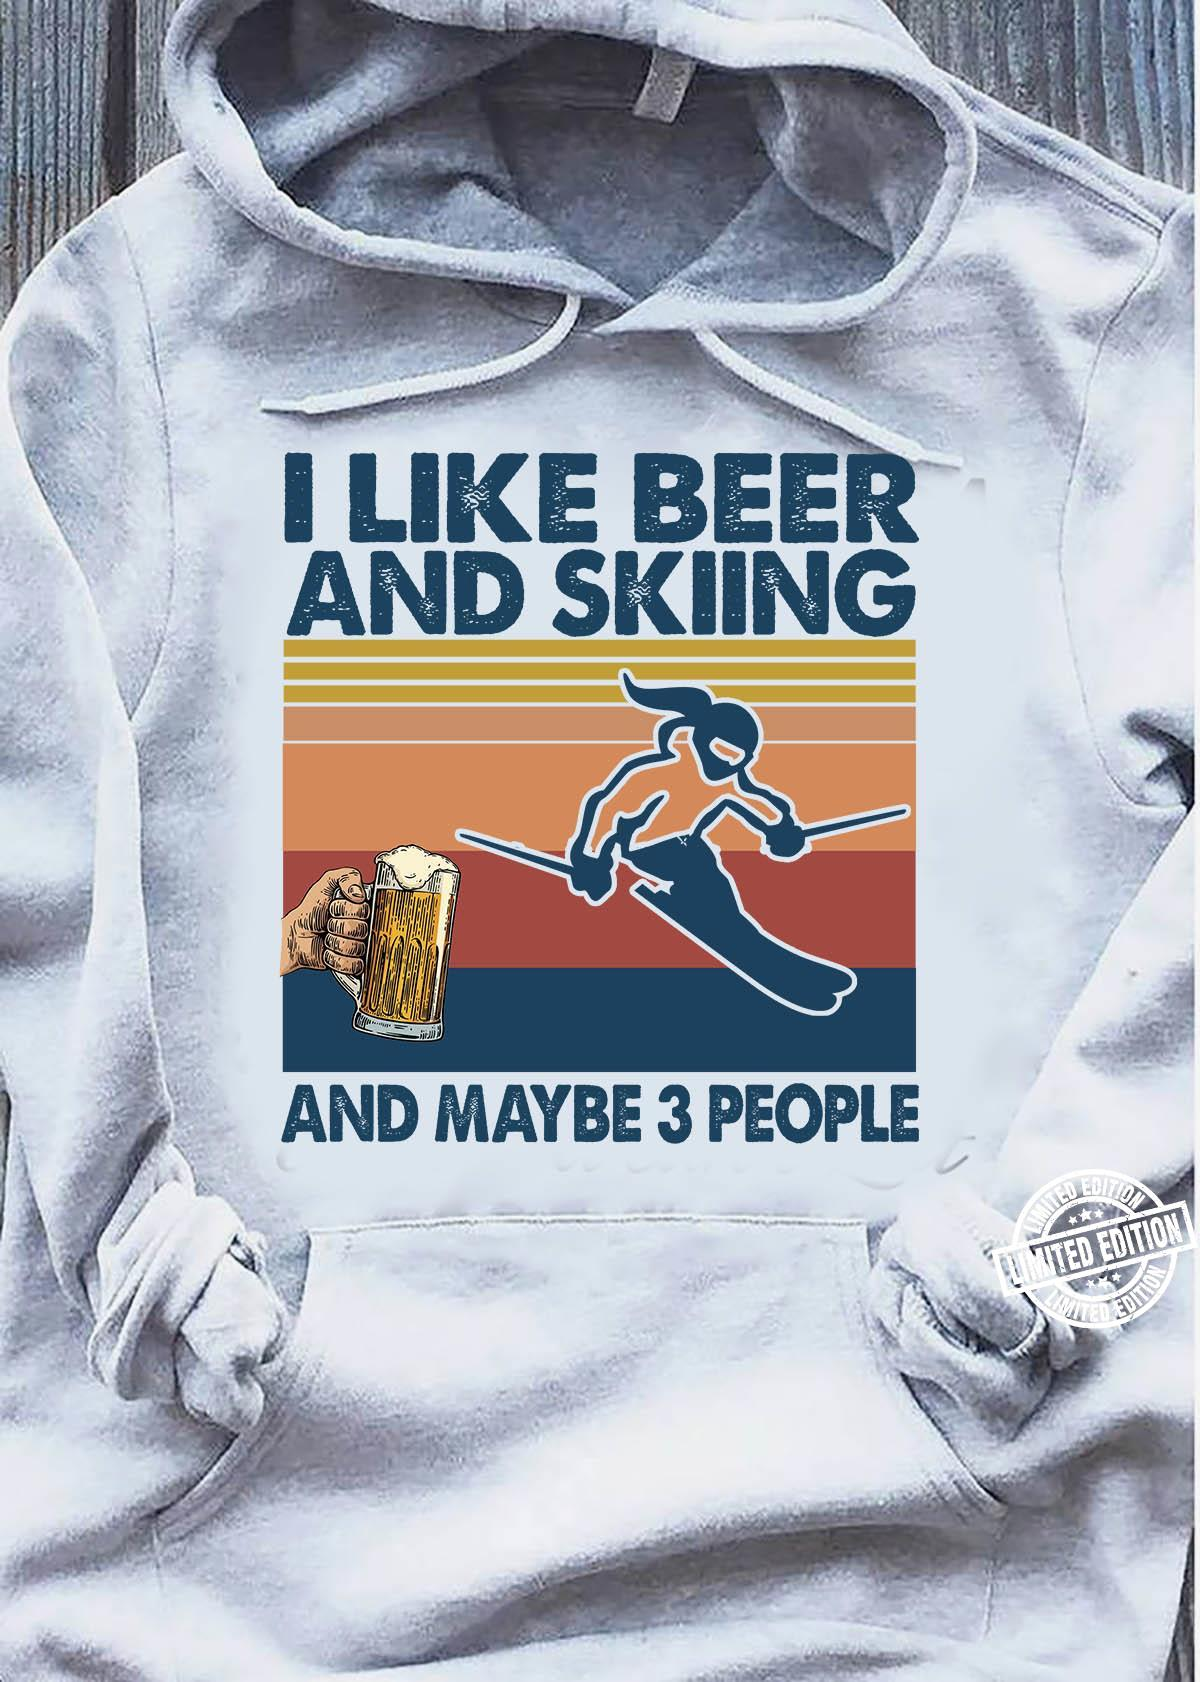 I like beer and skiing and maybe 3 people shirt